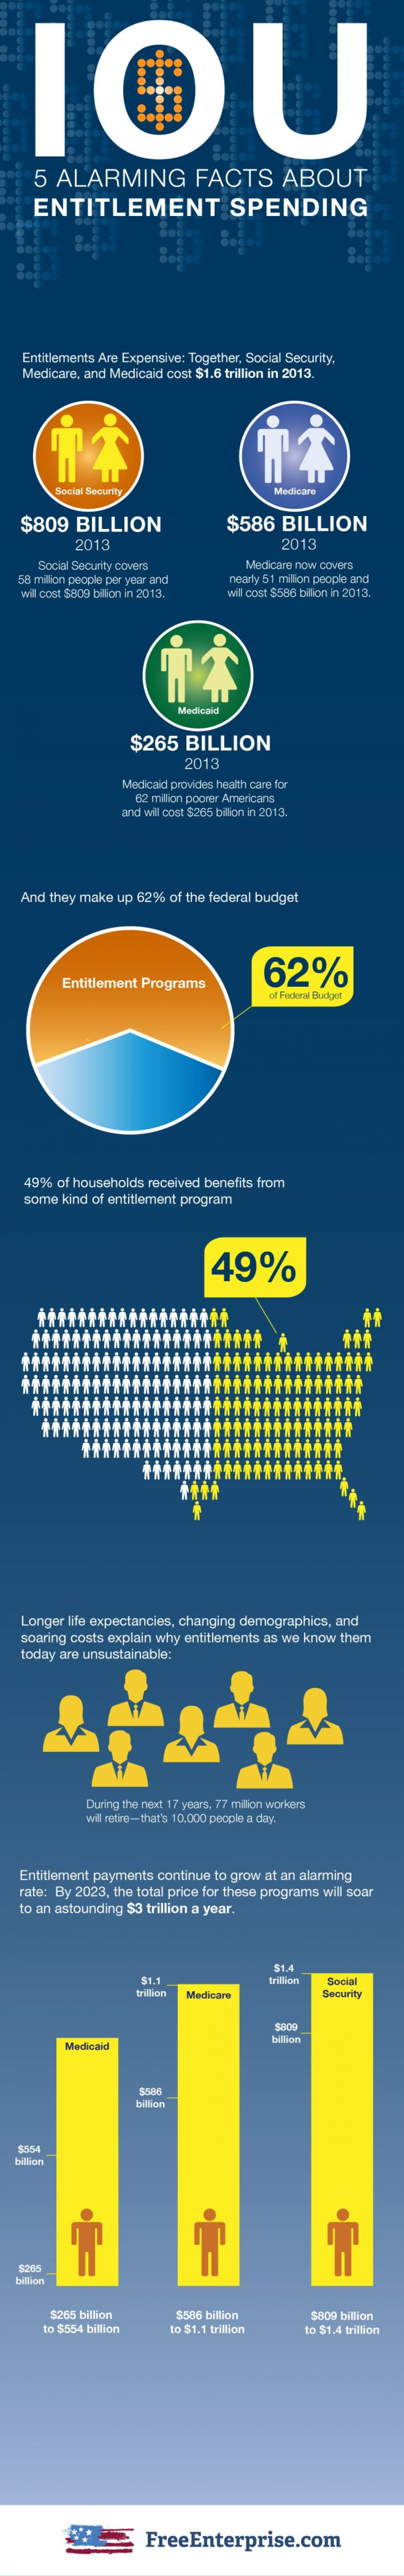 5 Alarming Facts About Entitlement Spending Infographic